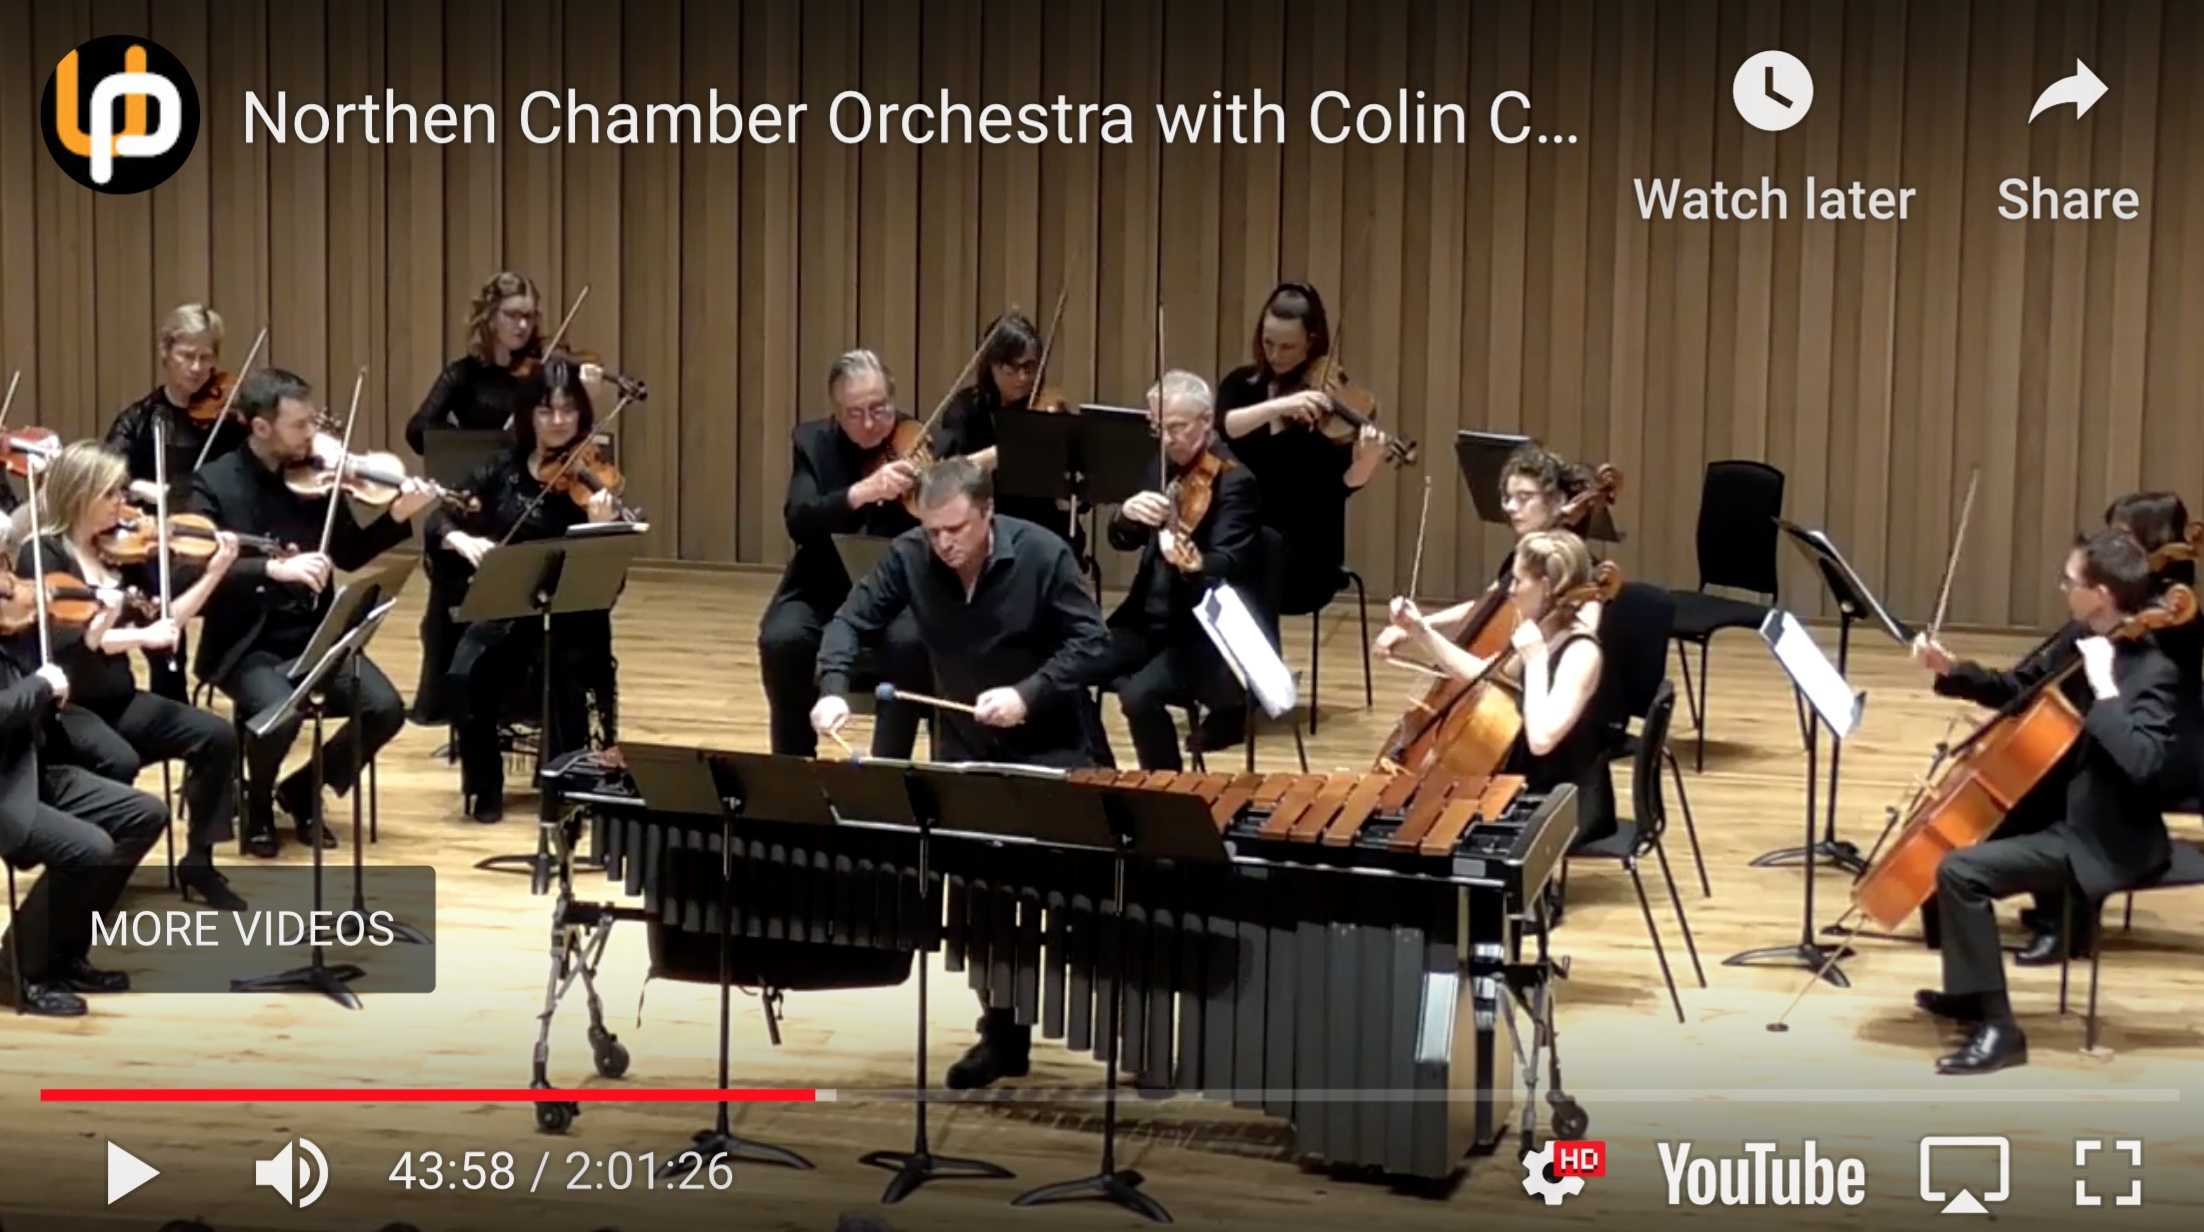 NCO with Colin Currie